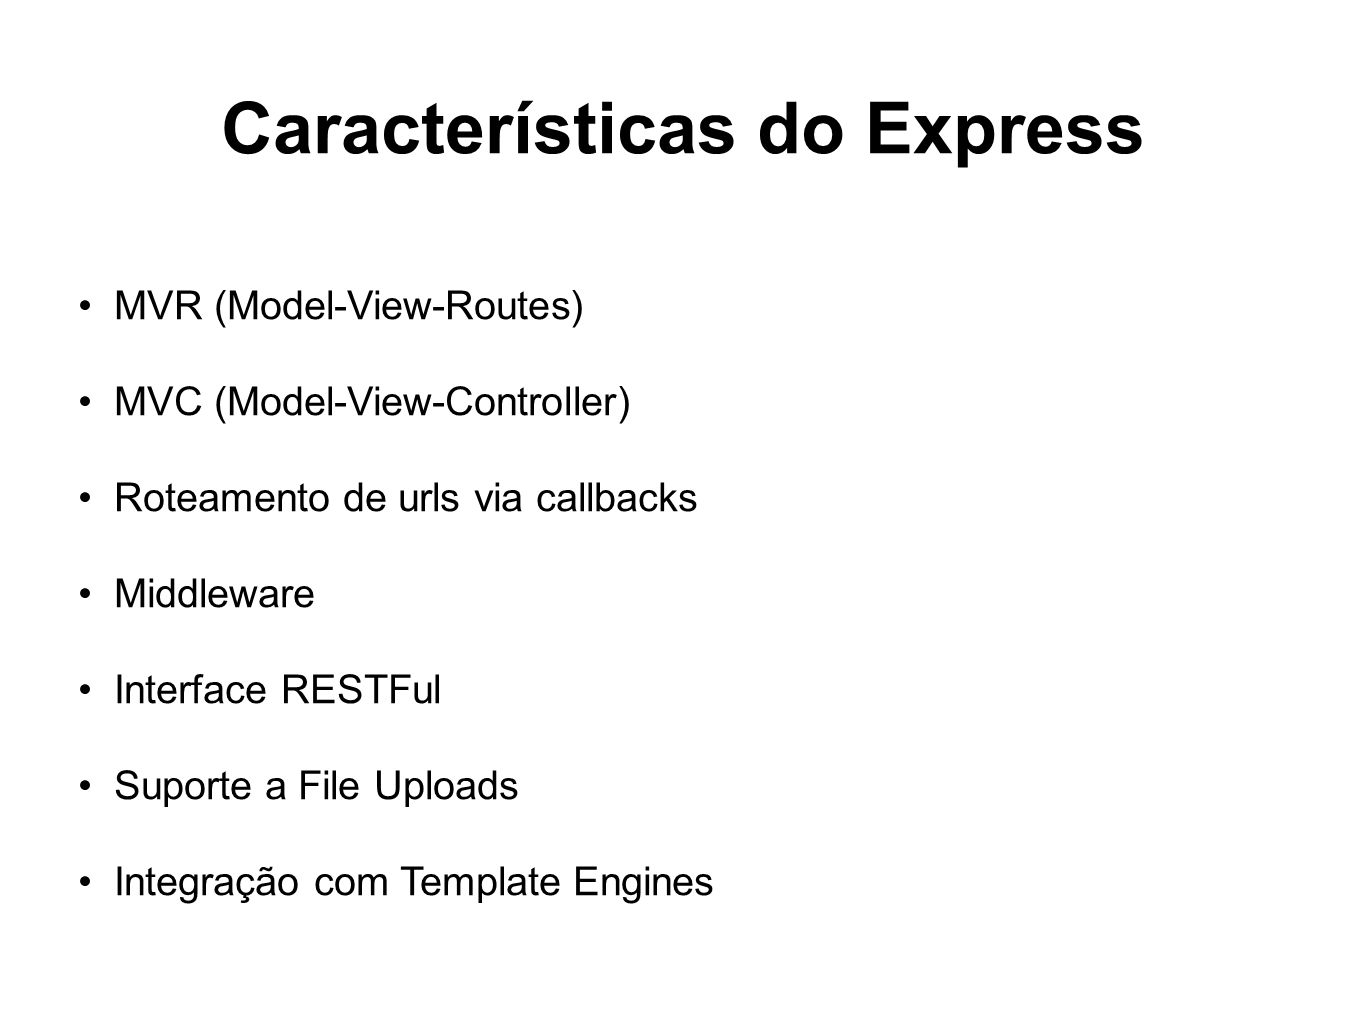 Características do Express MVR (Model-View-Routes) MVC (Model-View-Controller) Roteamento de urls via callbacks Middleware Interface RESTFul Suporte a File Uploads Integração com Template Engines